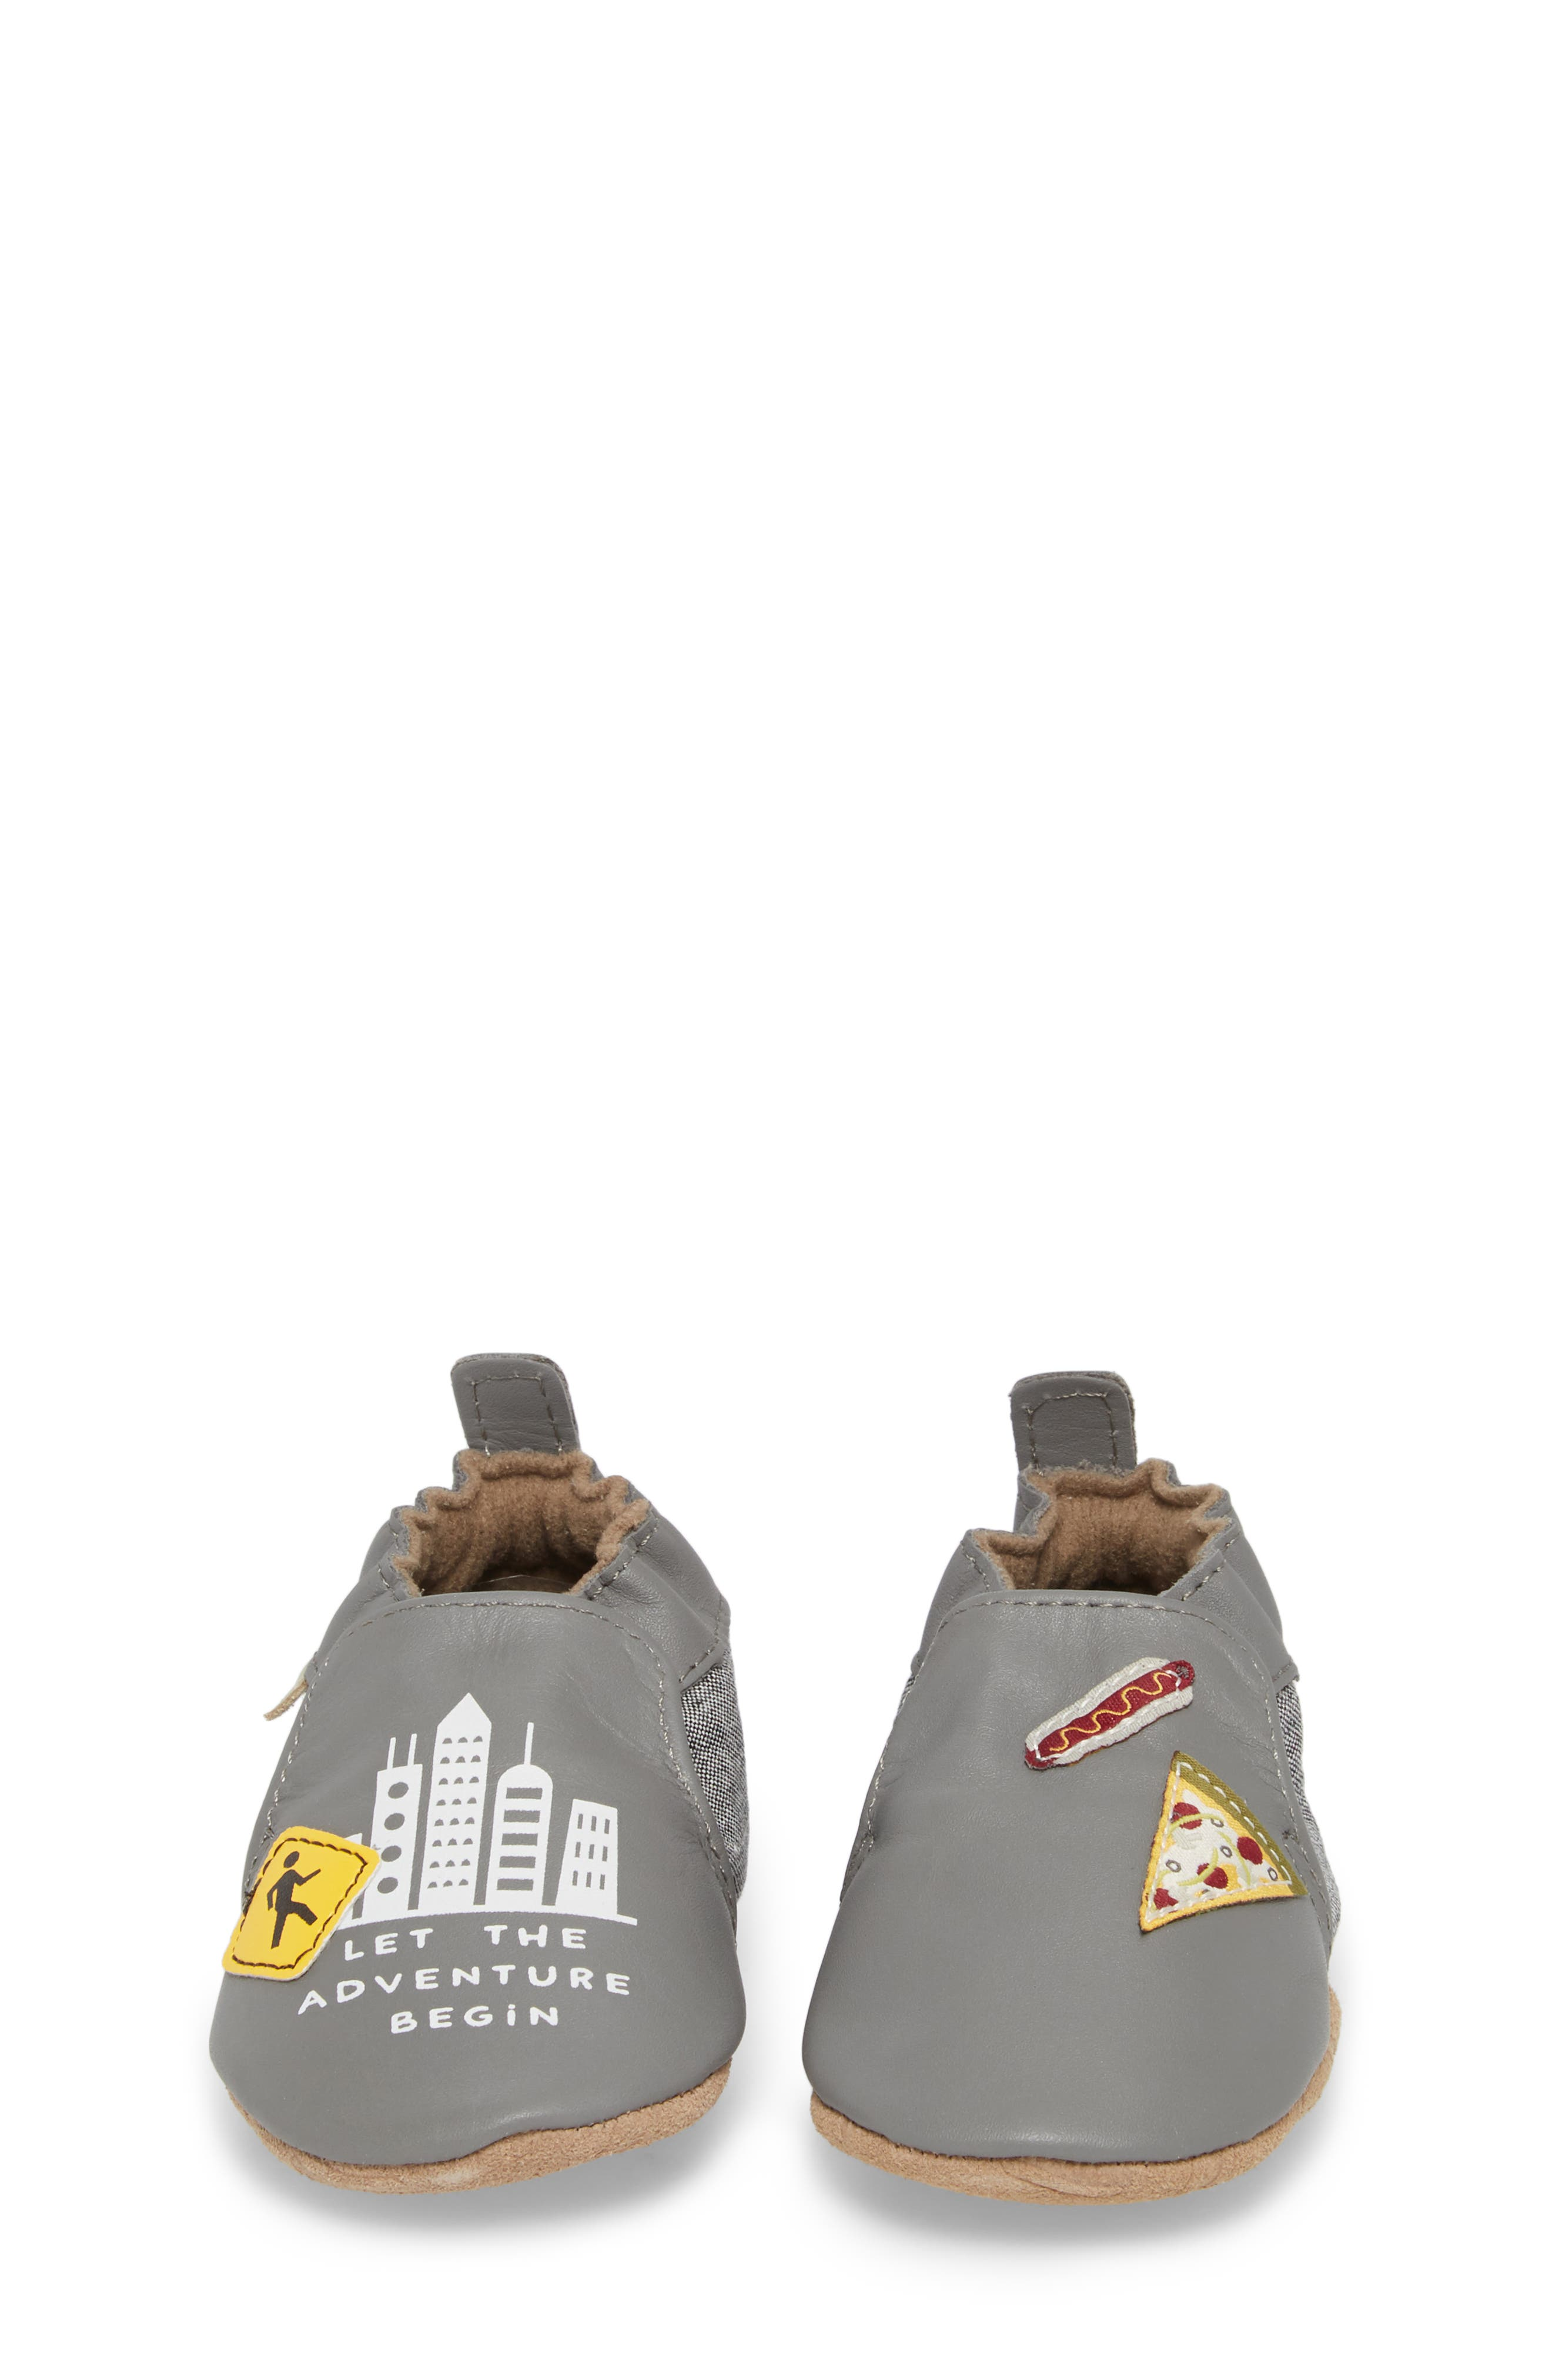 City Life Moccasin Crib Shoe,                             Alternate thumbnail 4, color,                             020